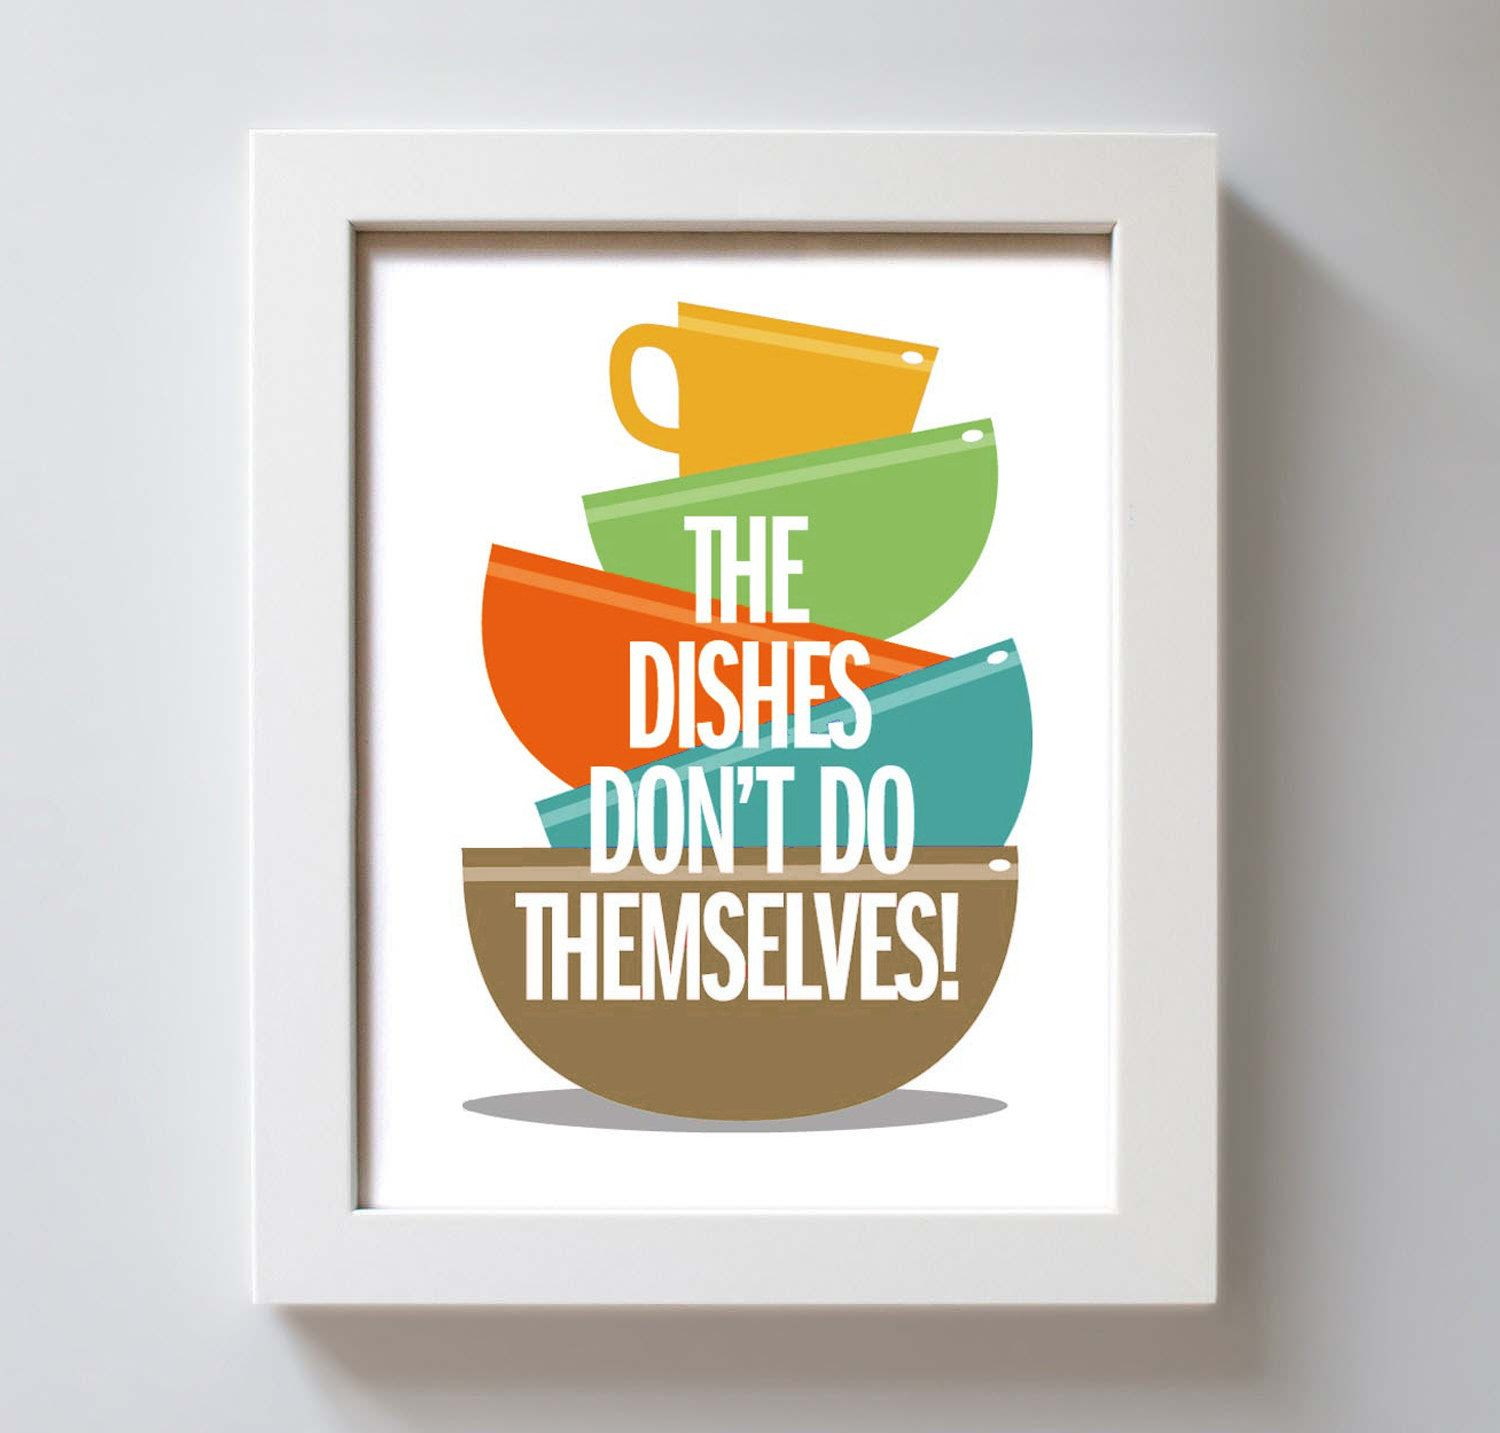 Colorful Kitchen Decor Pictures: Art For Kitchen Art Print Fiestaware Washing Dishes